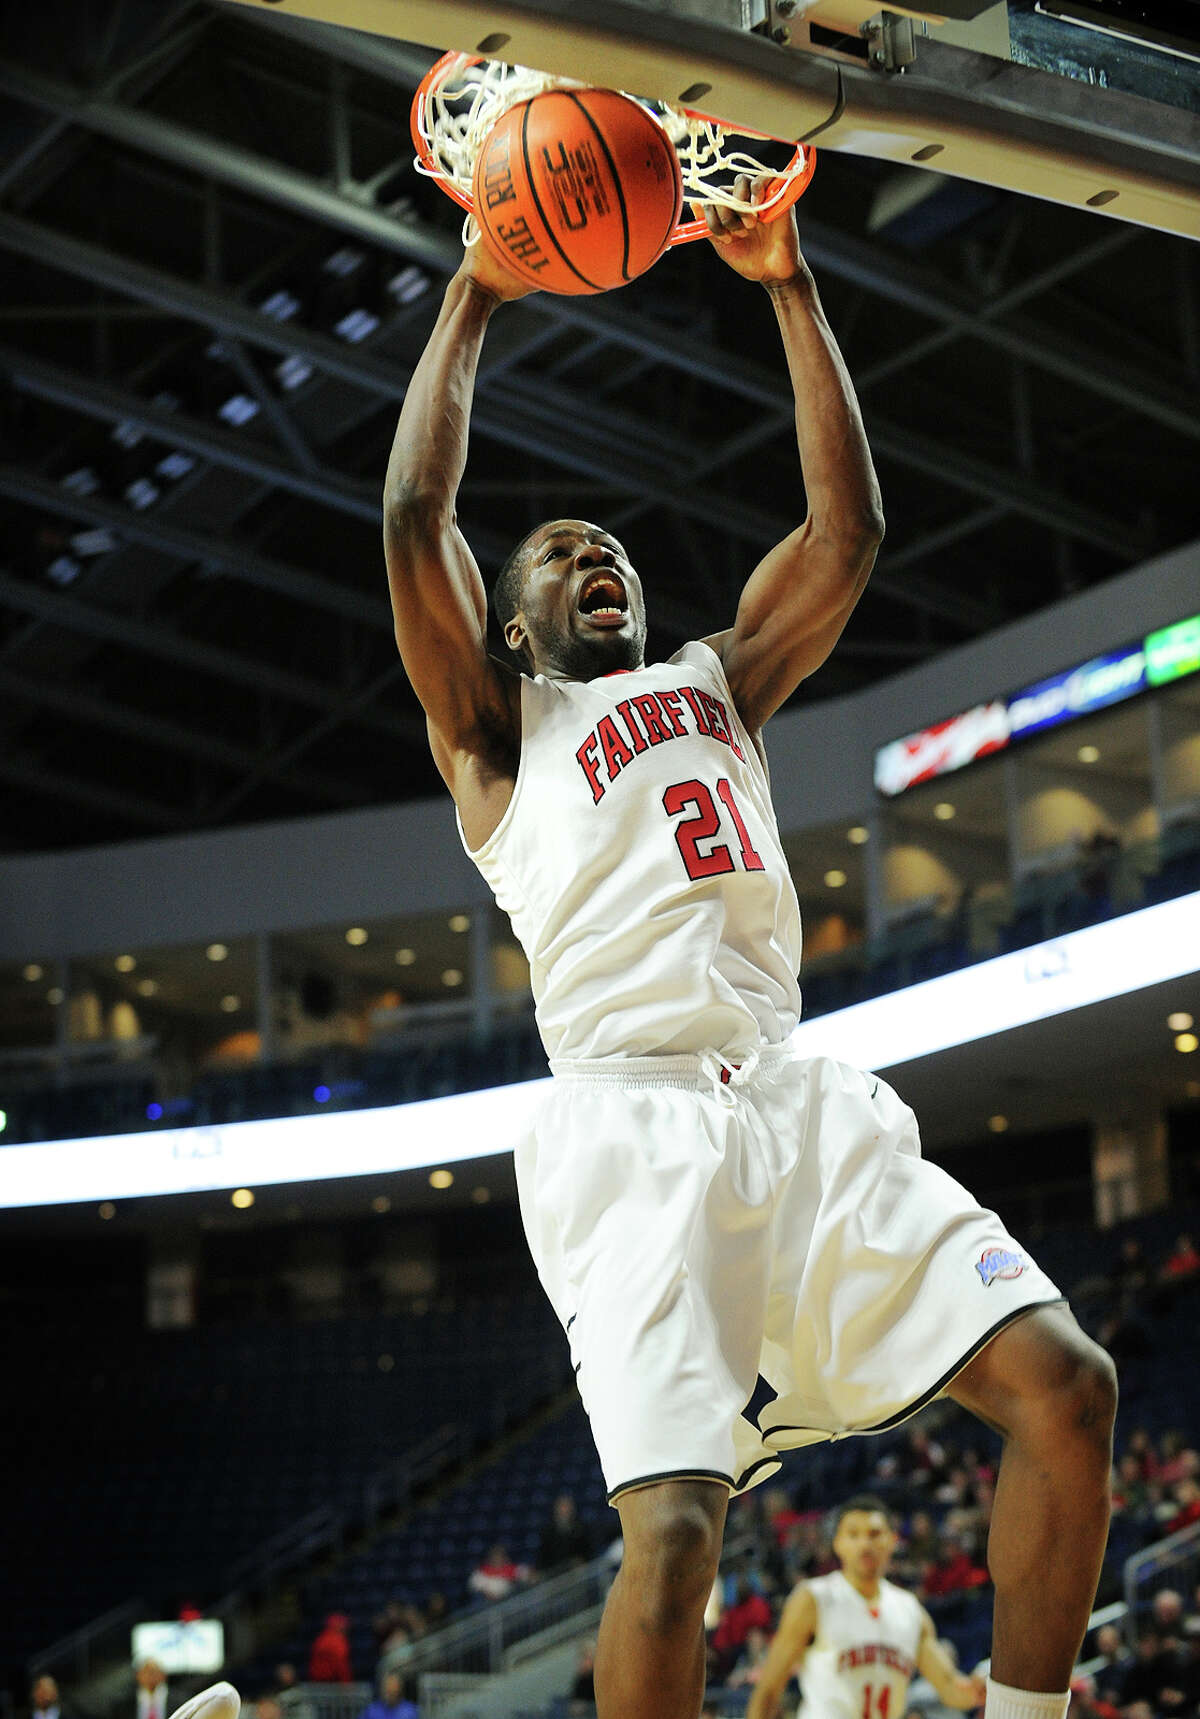 The Fairfield U Stags take on Marist at Webster Bank Arena on Friday. Find out more.